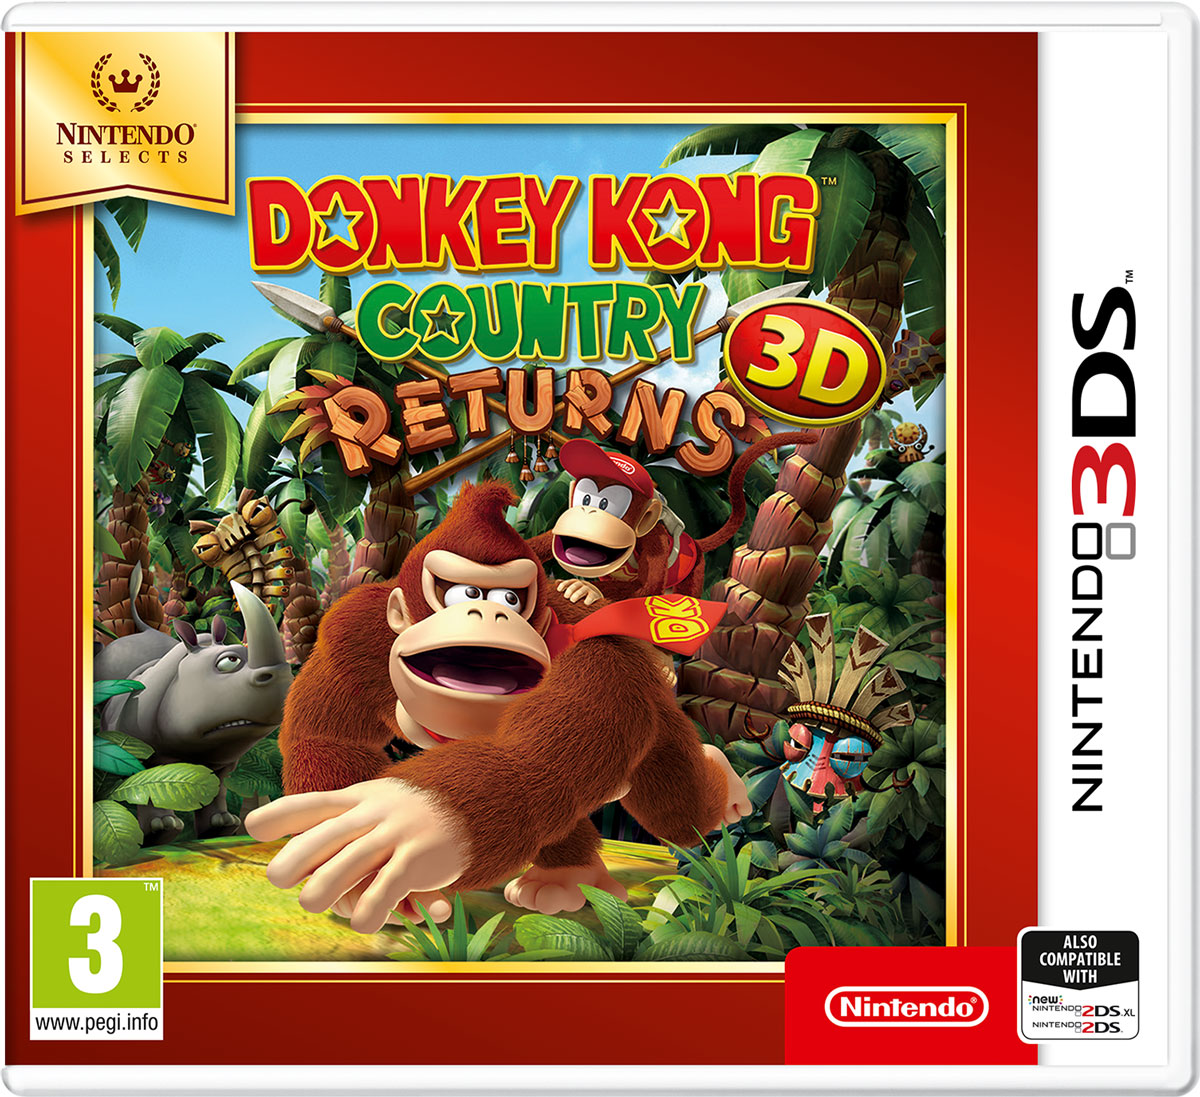 Donkey Kong Country Returns 3D (3DS) new nintendo 2ds xl animal crossing edition gray портативная игровая приставка